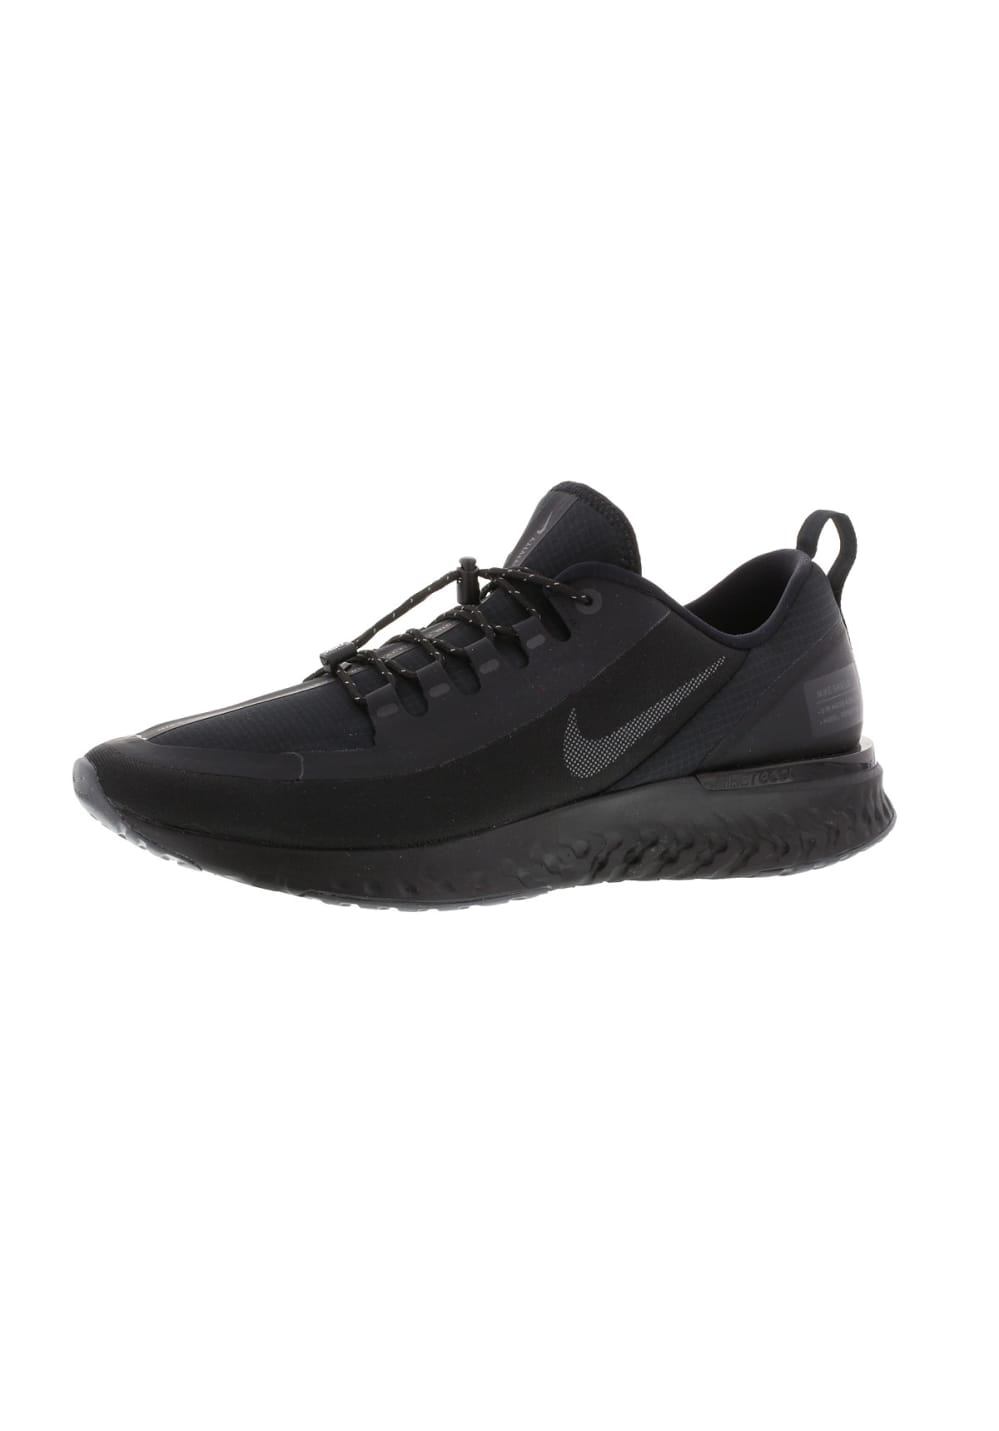 c5f0449b Nike Odyssey React Shield - Running shoes for Men - Black